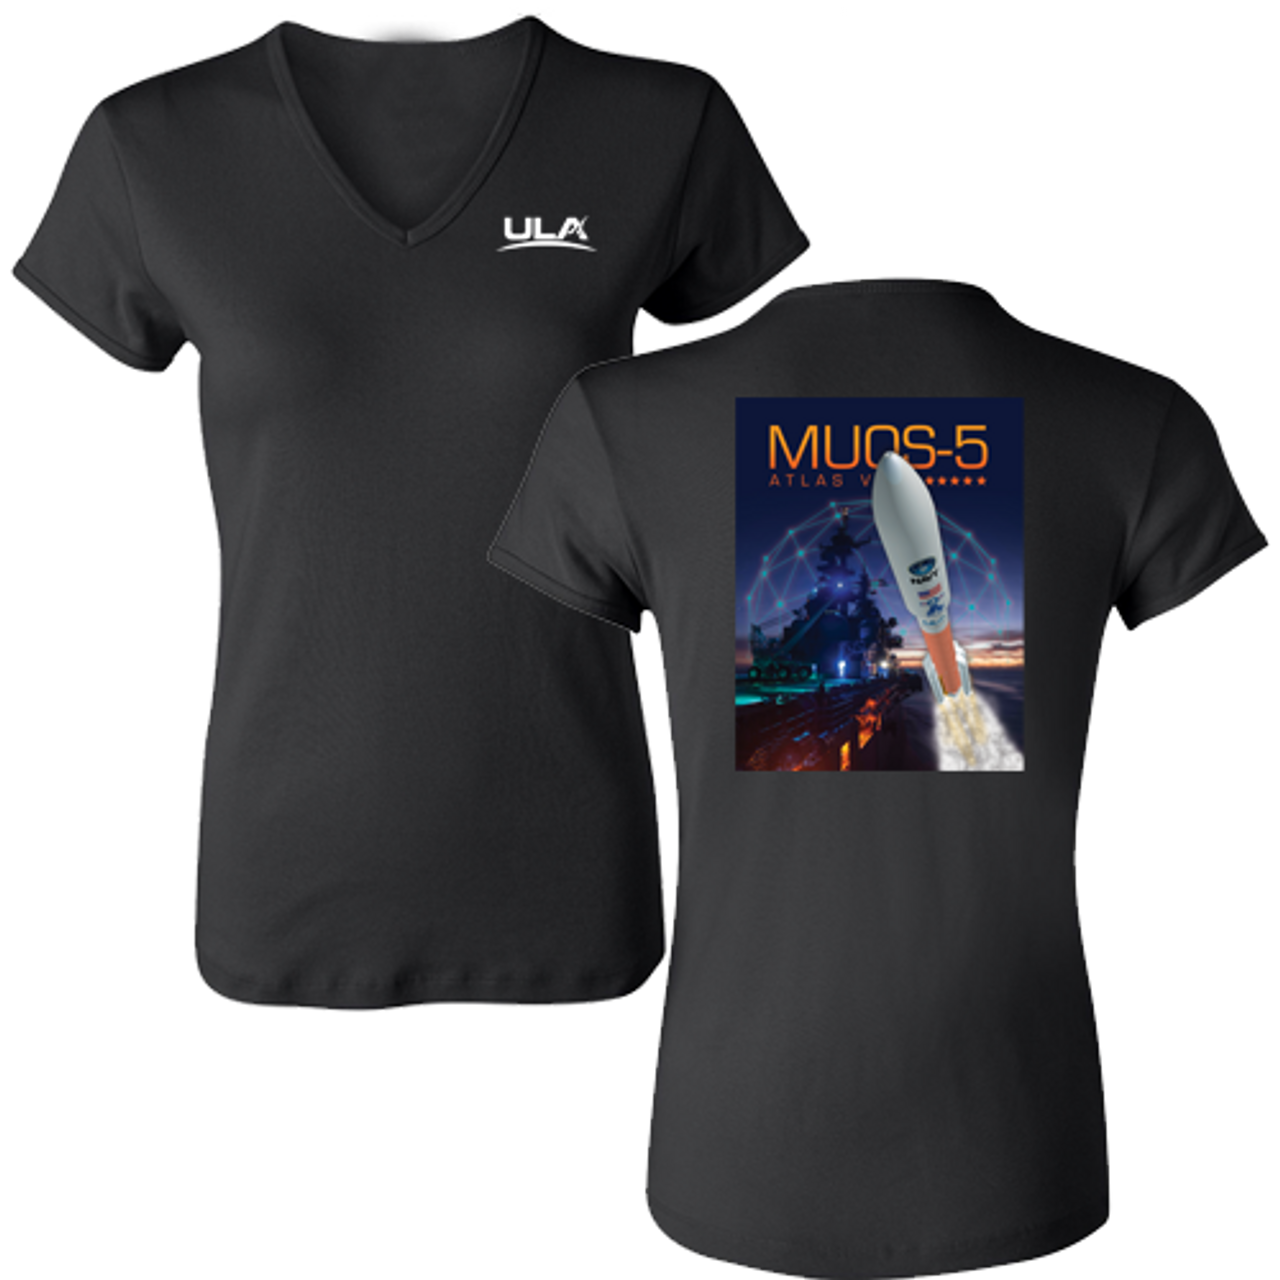 3eff1324e MUOS-5 Women s V-Neck Bella Fitted T-shirt - United Launch Alliance